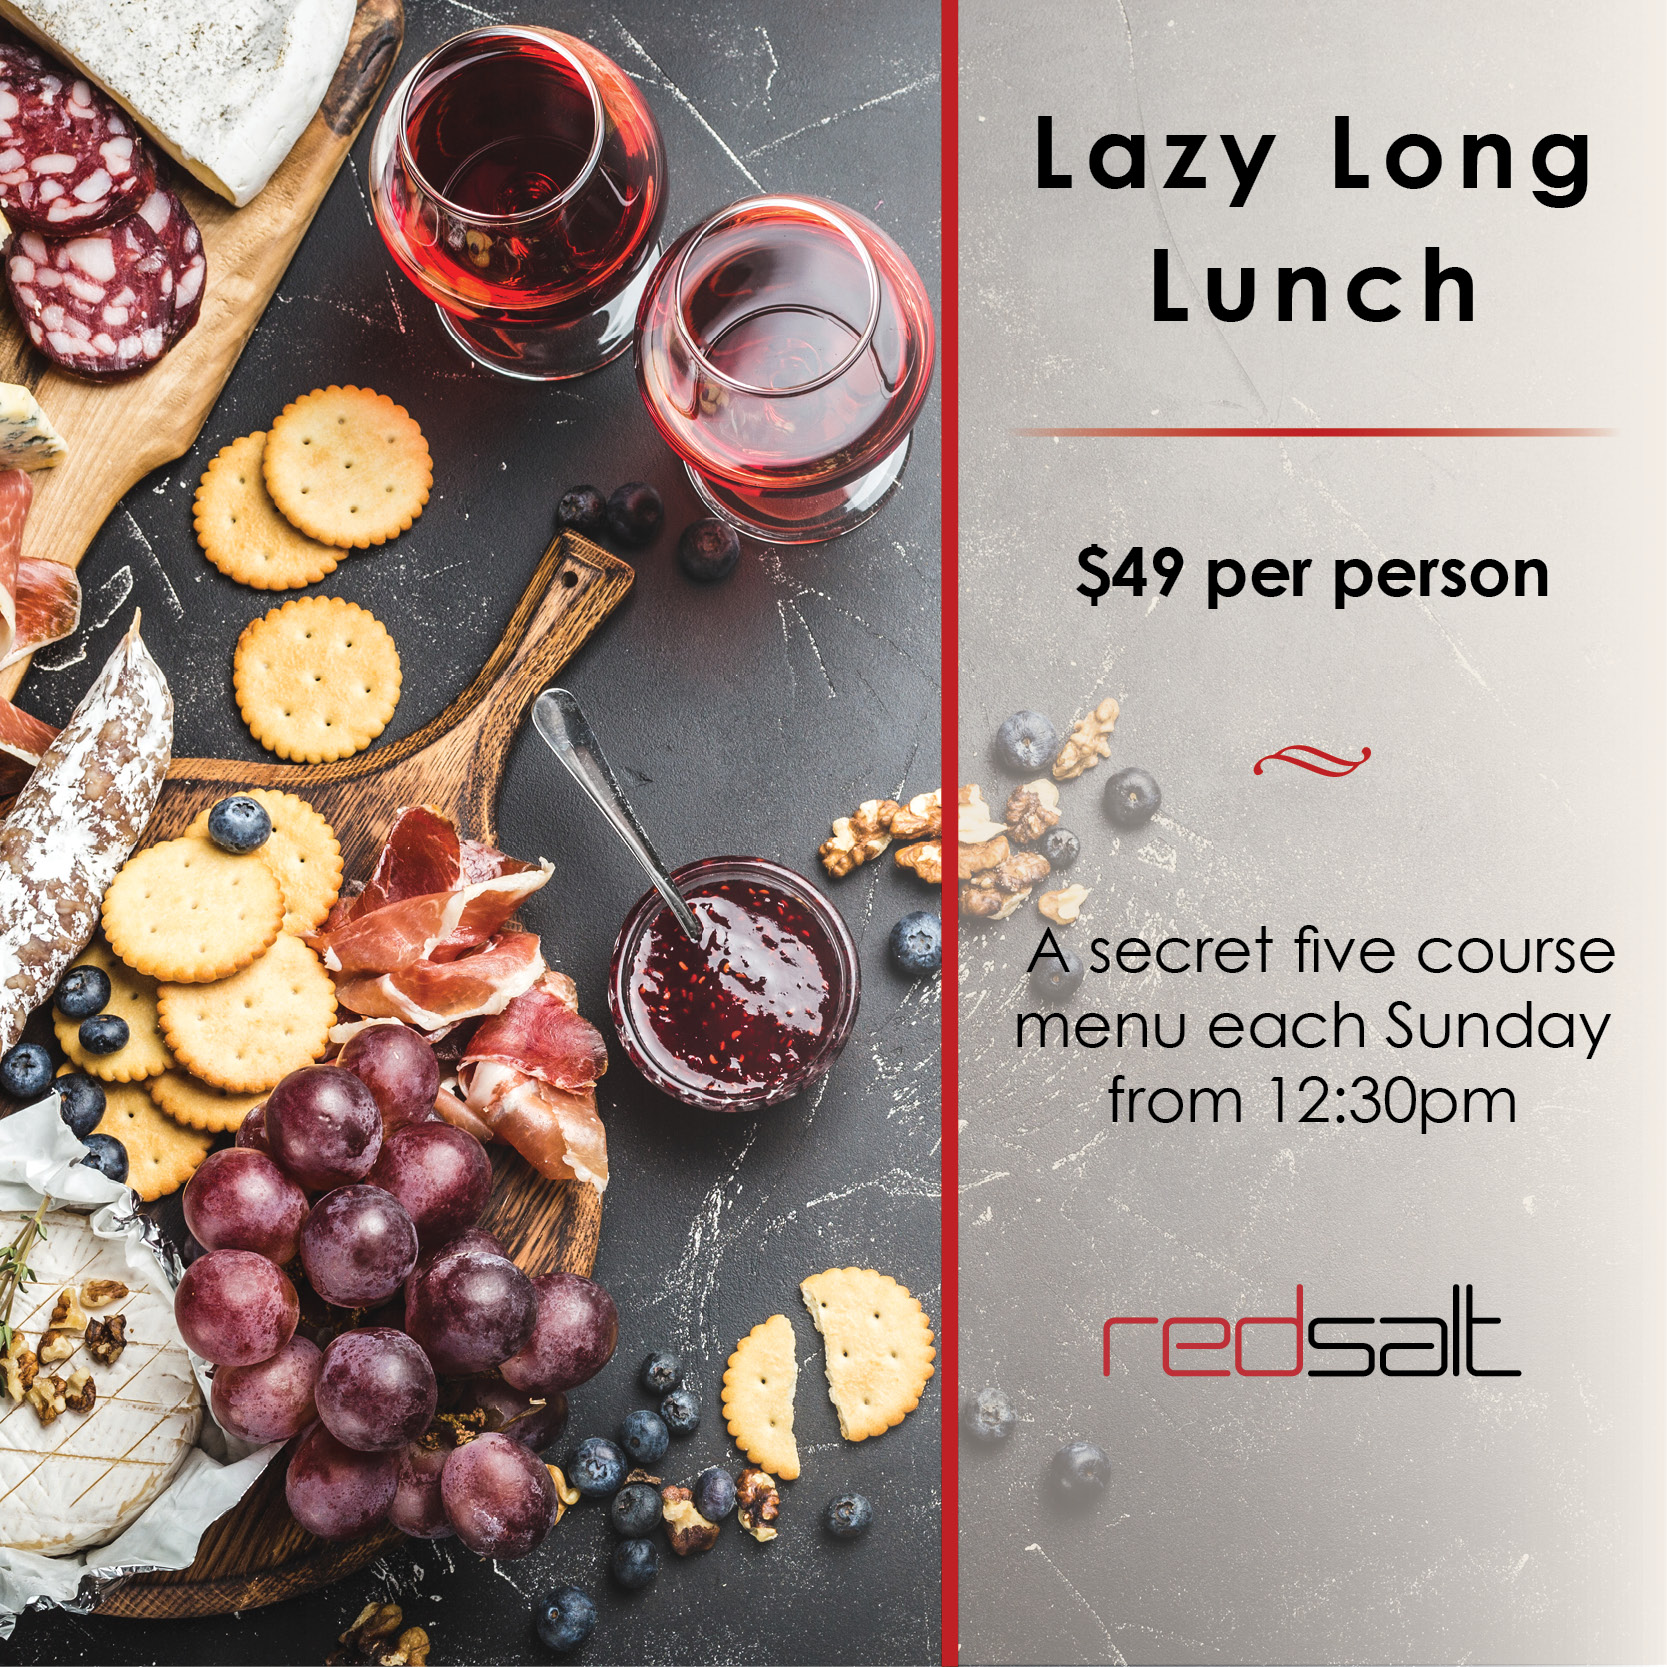 Click HERE to Book the Ultimate Lazy Lunch